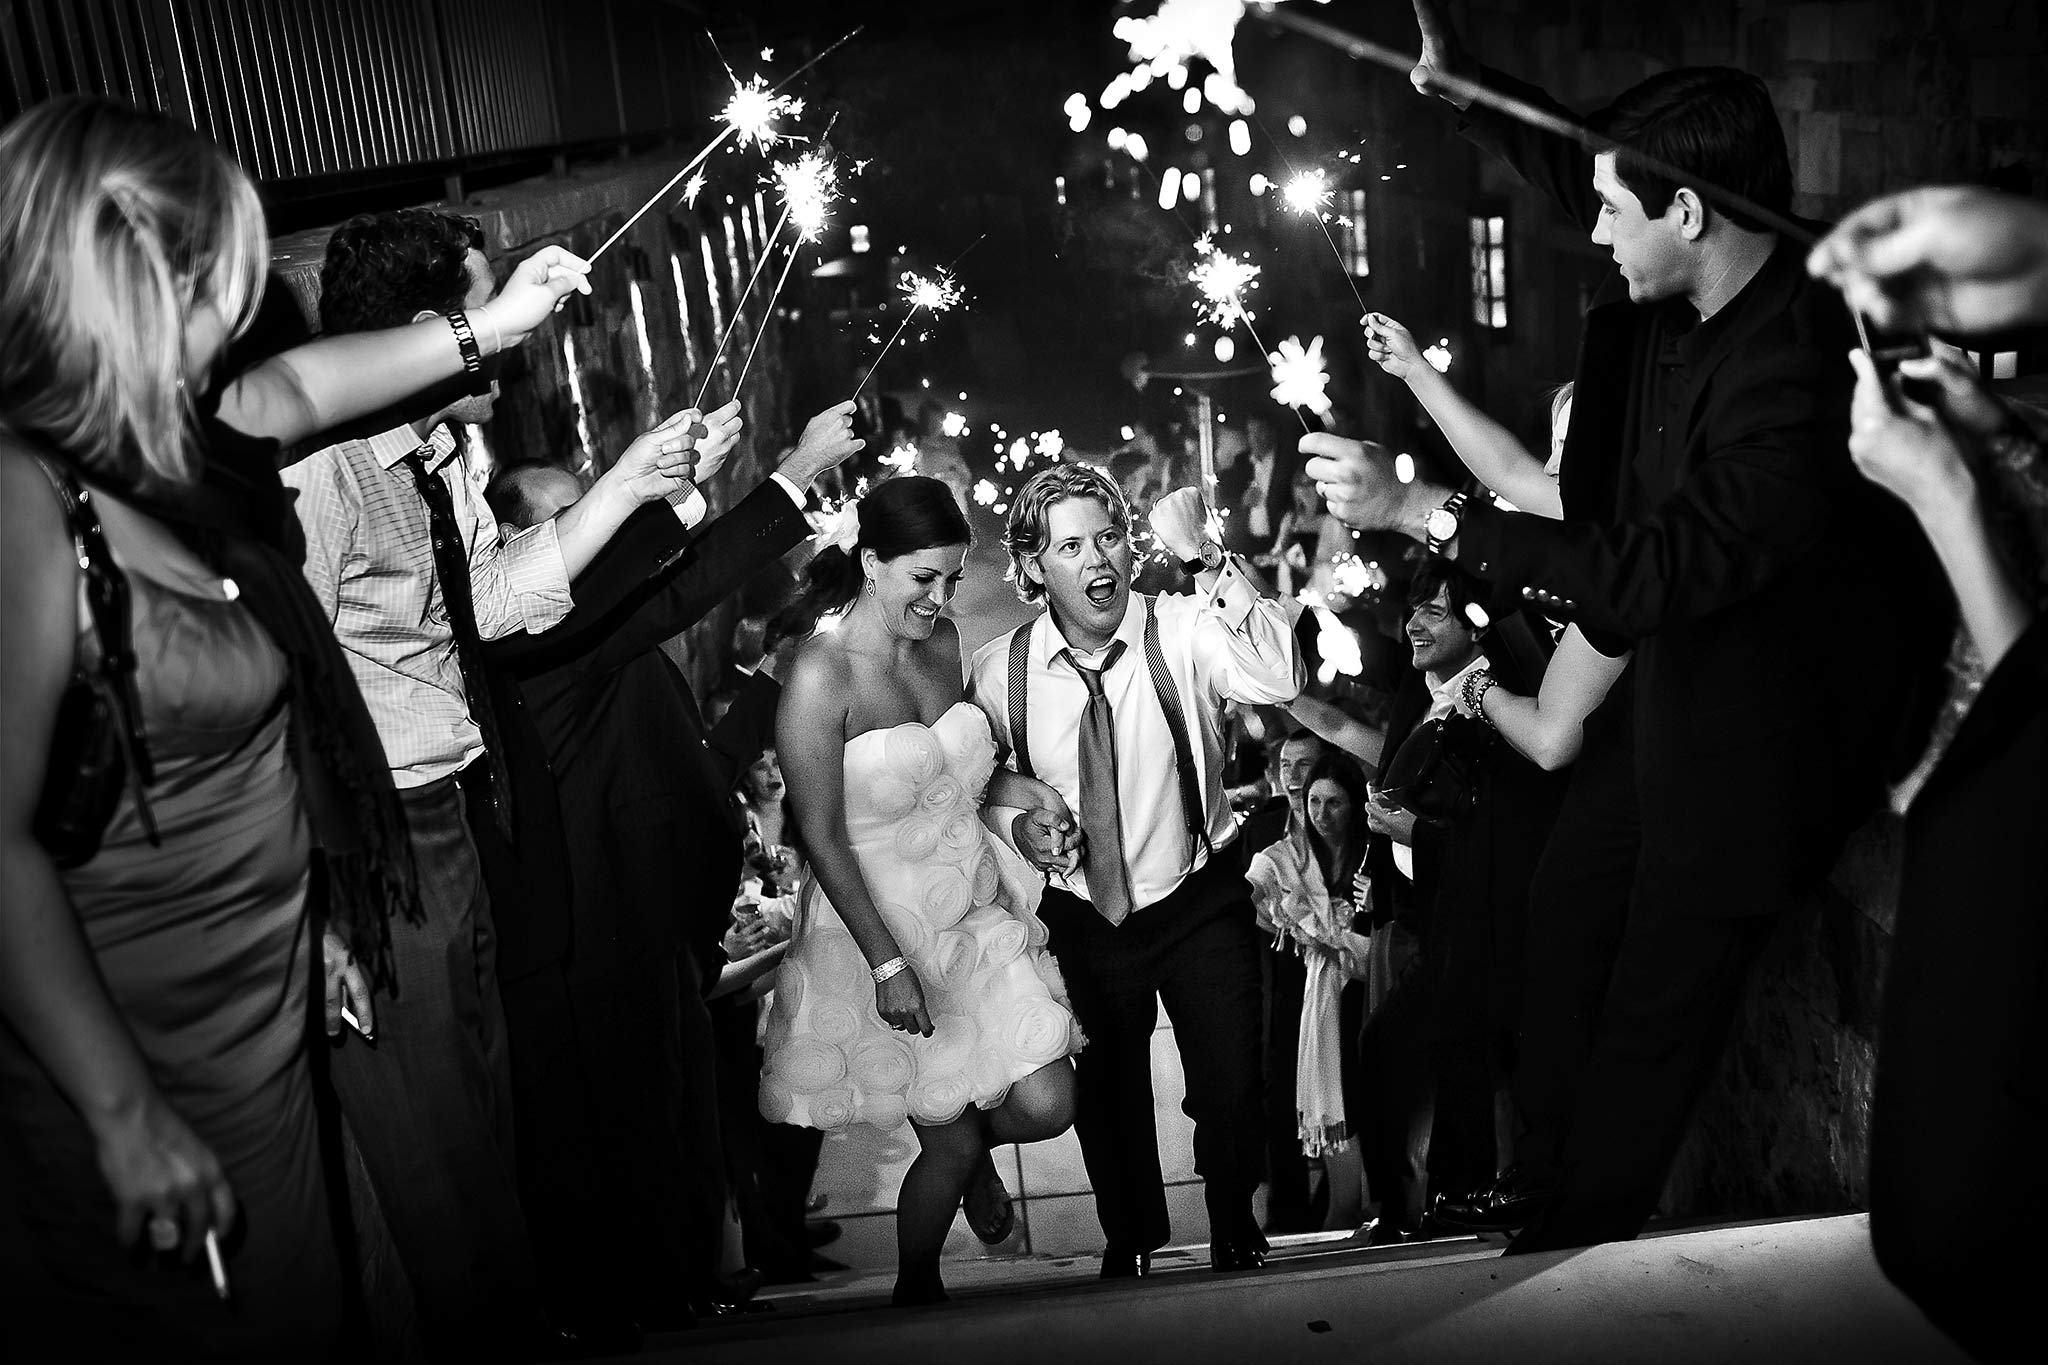 Leaving the Four Seasons Vail via sparklers at a wedding